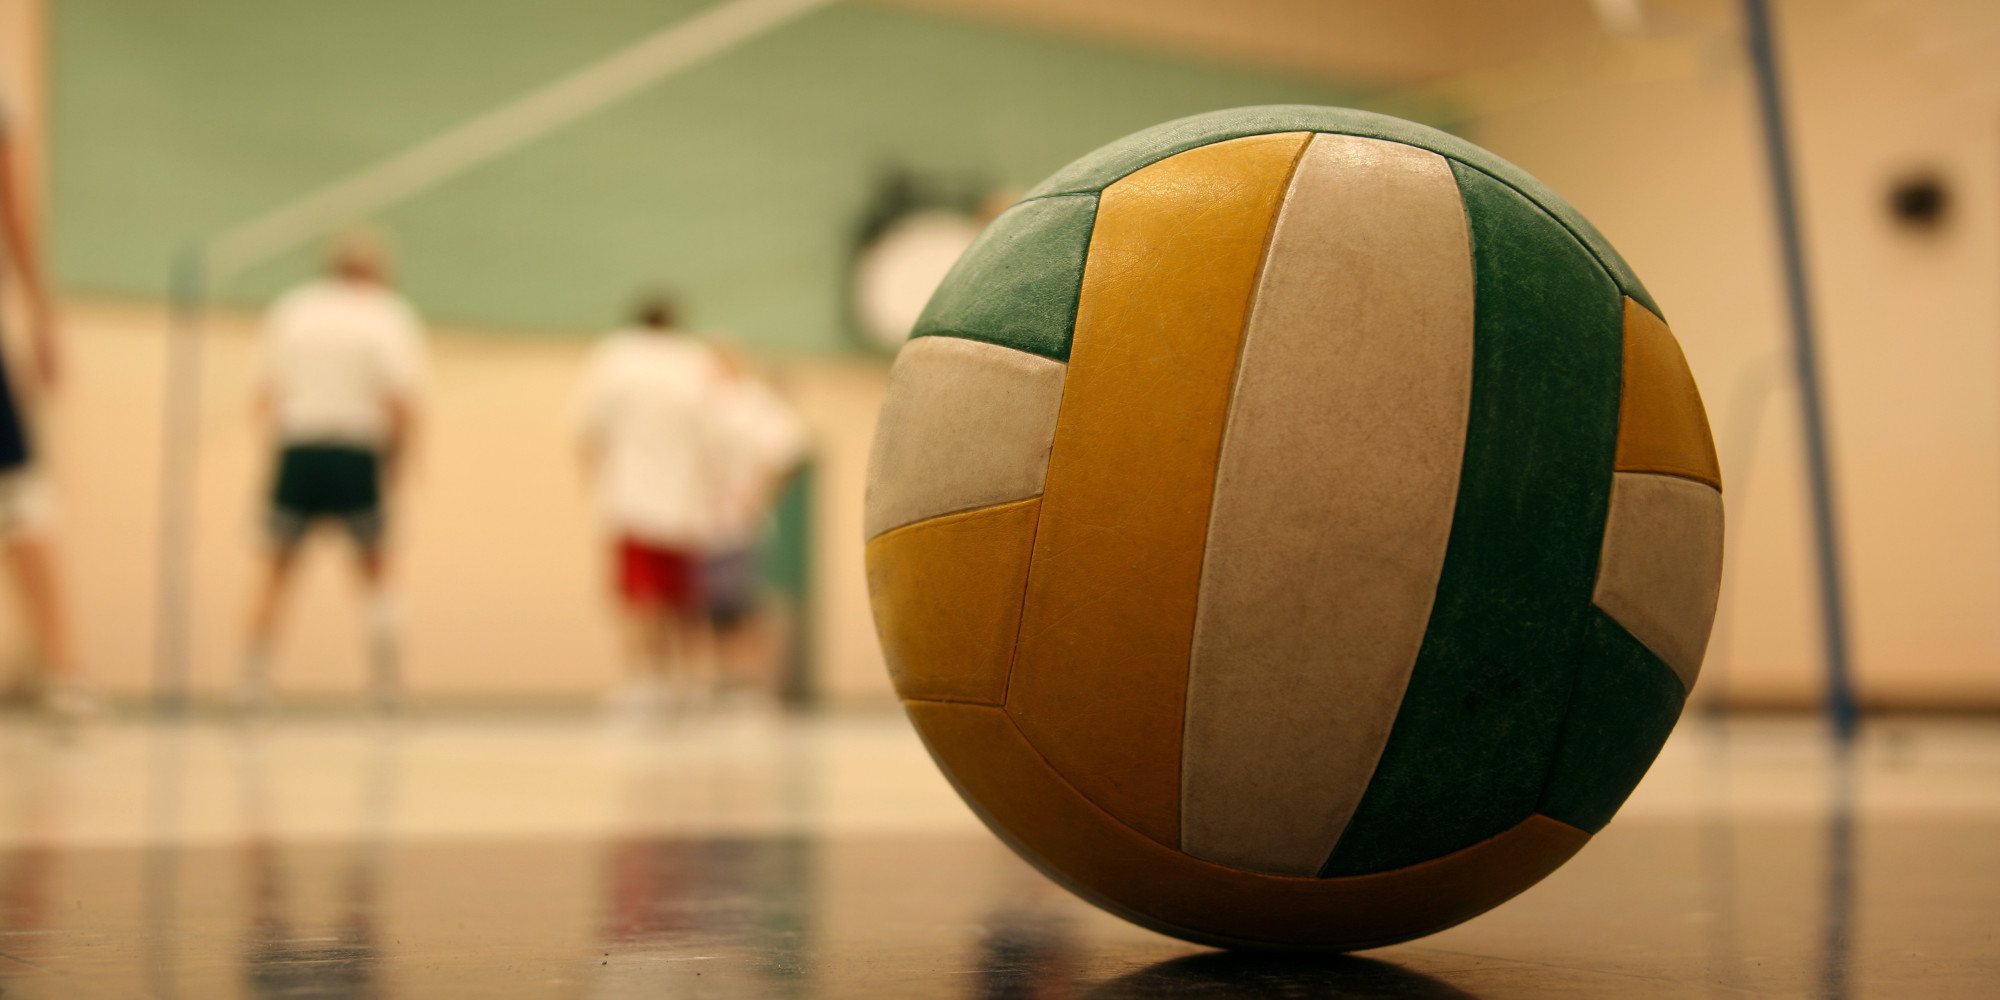 Most Favorite Hobby Volleyball Jessica Ryu S Hobbies